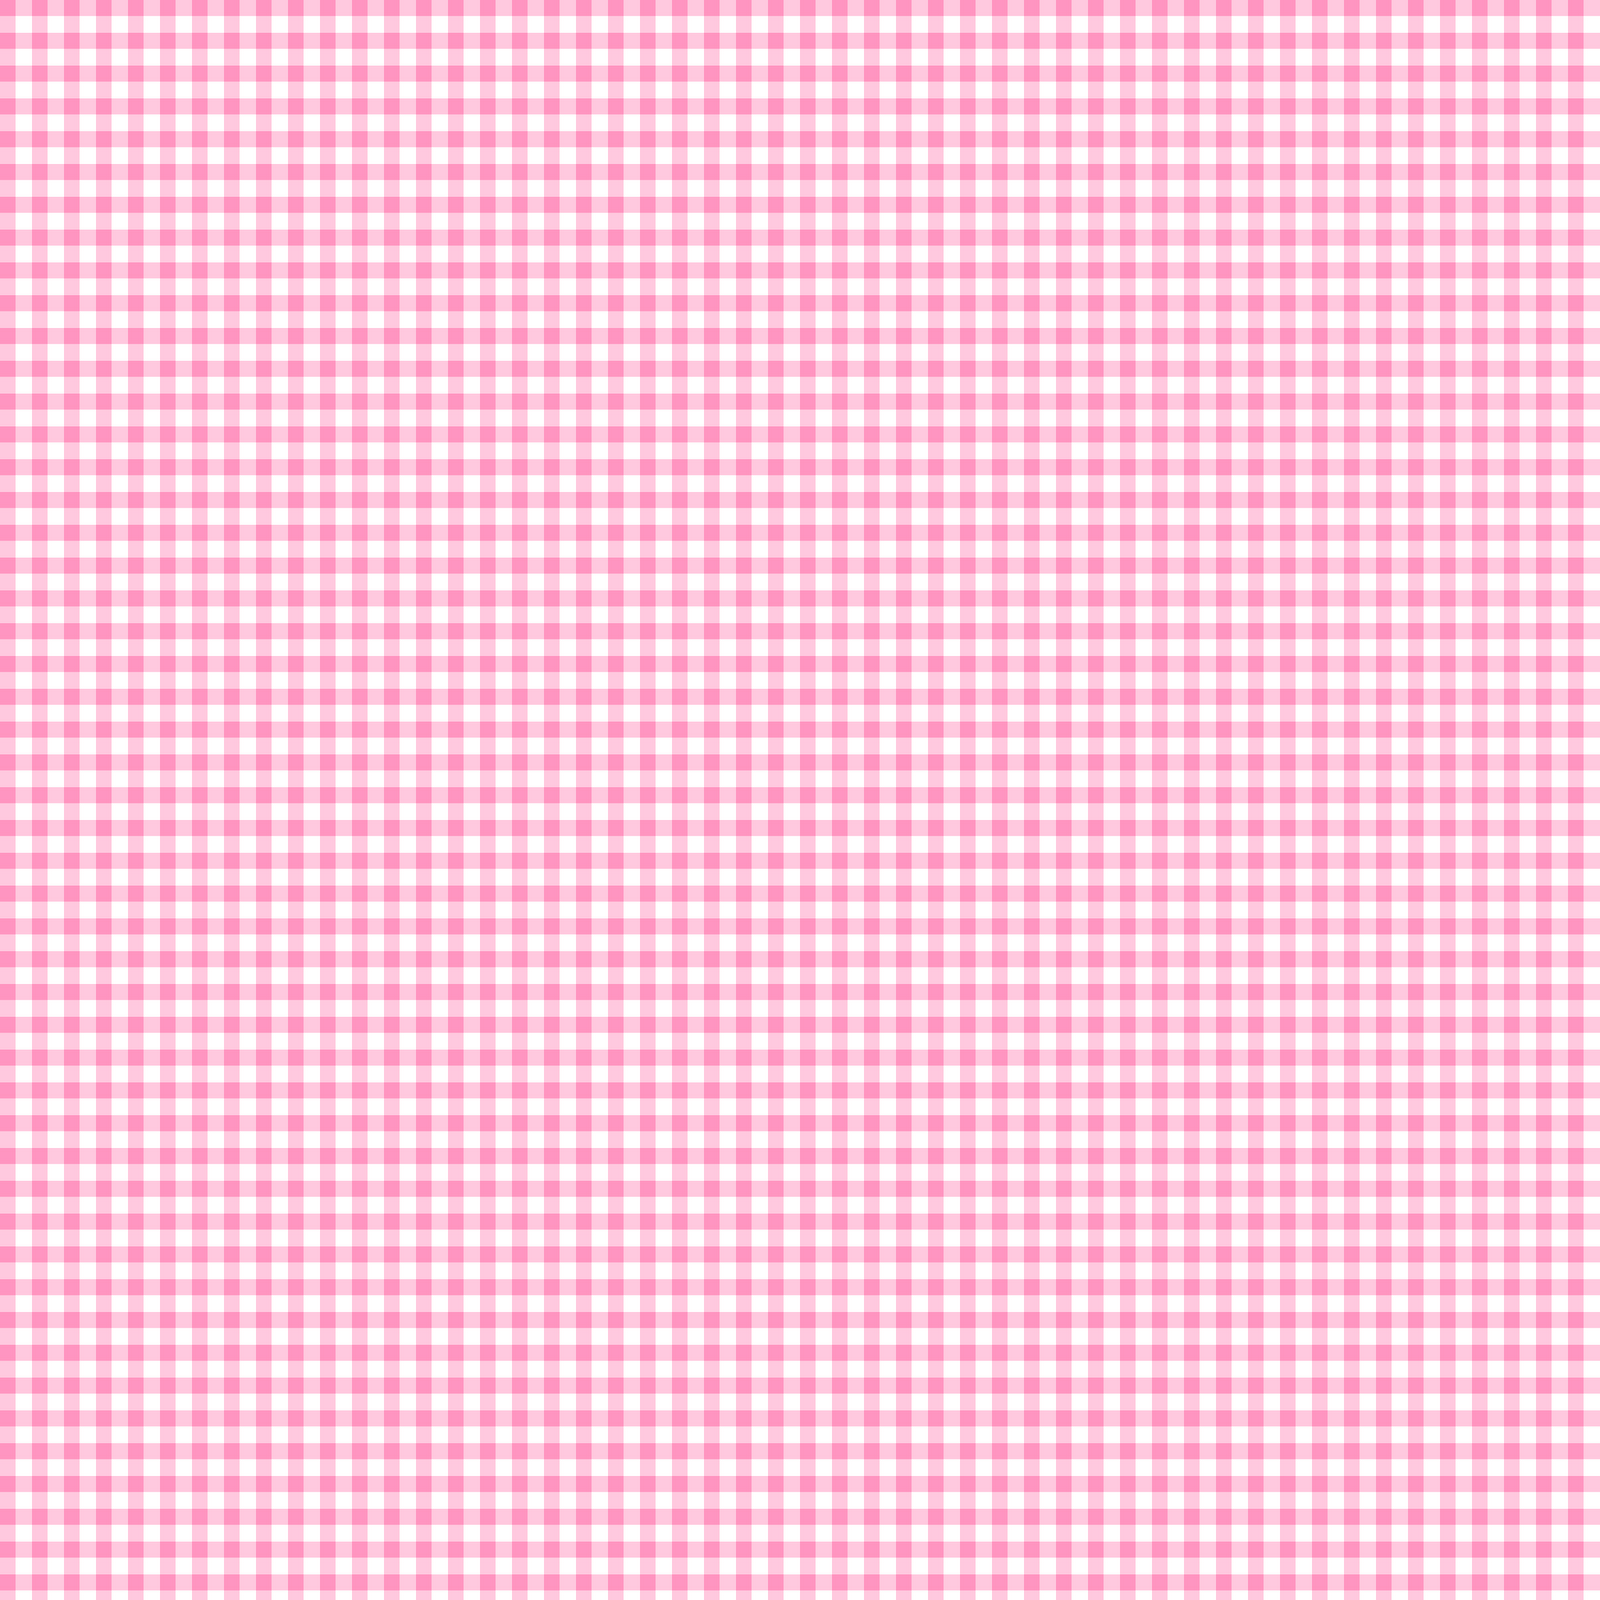 Free Digital And Printable Gingham Scrapbooking Paper II.